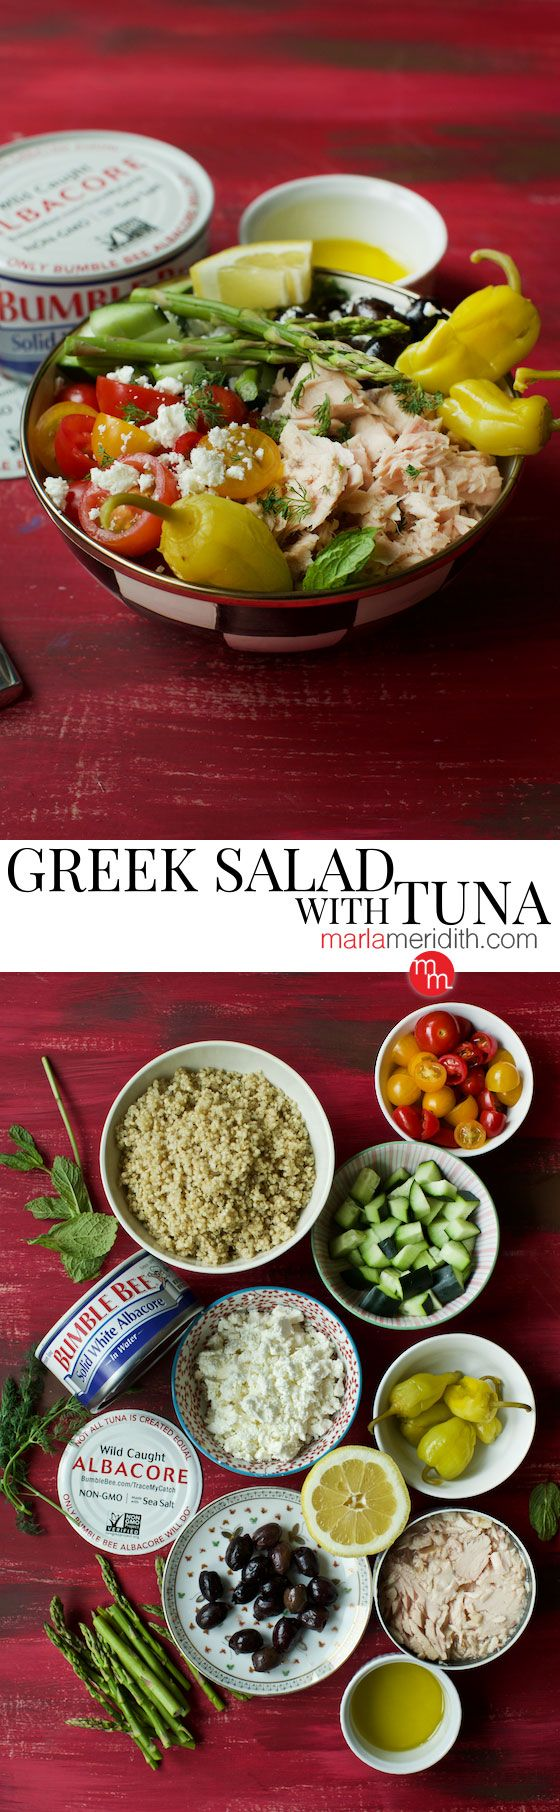 We are loving this super delicious Greek Salad with Bumble Bee® Solid White Albacore Tuna recipe @BumbleBeeSeafoods It only takes a few minutes to prepare! OnlyAlbacore #AD @MarlaMeridith ( @marlalmeridith ) @MarlaMeridith ( @marlalmeridith )